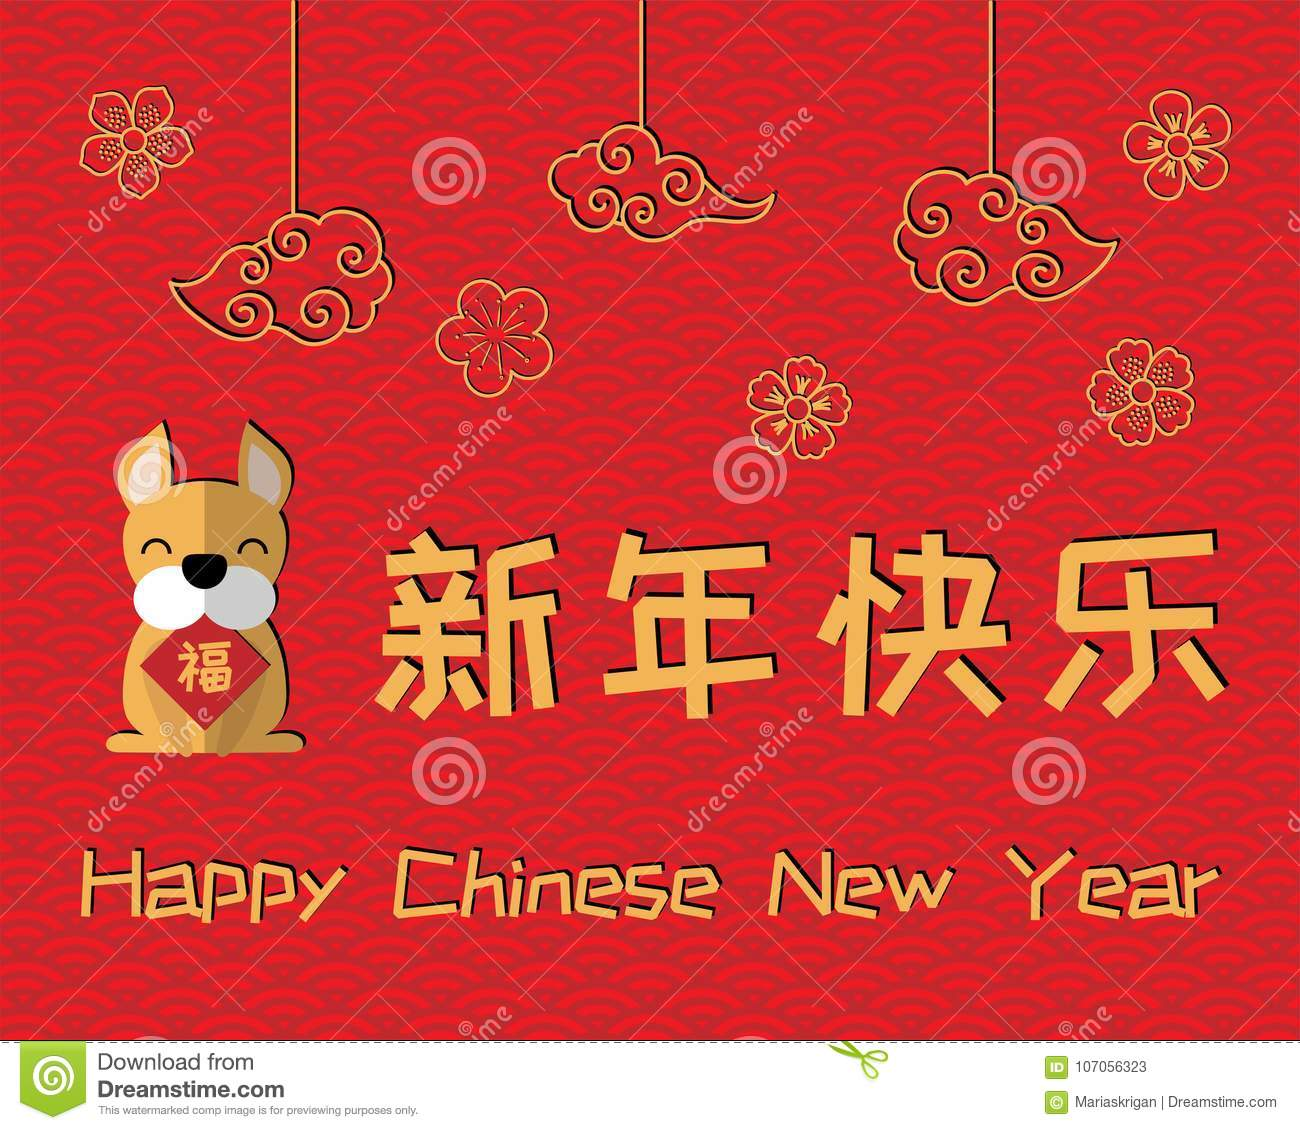 2018 chinese new year greeting card stock vector illustration of 2018 chinese new year greeting card banner with cute funny dog holding card with character fu blessing clouds flowers text translation happy new year m4hsunfo